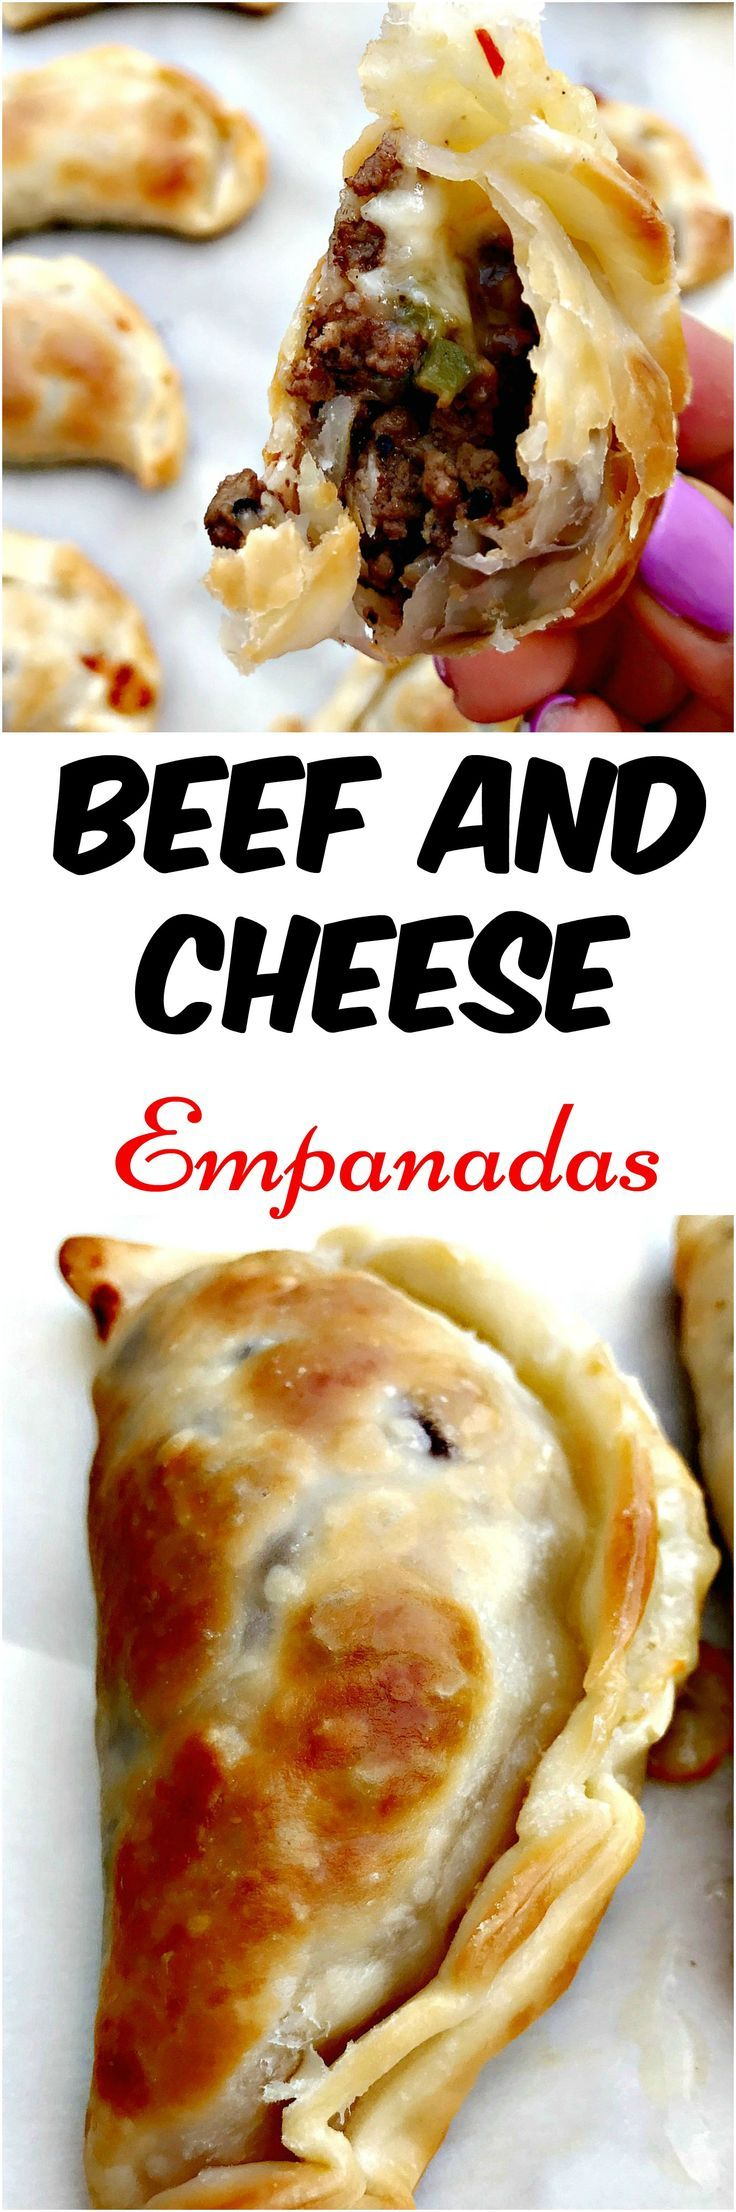 Beef and Cheese Empanadas are the perfect skinny, healthy appetizer loaded with ground beef and gooey mozzarella and pepperjack cheese.